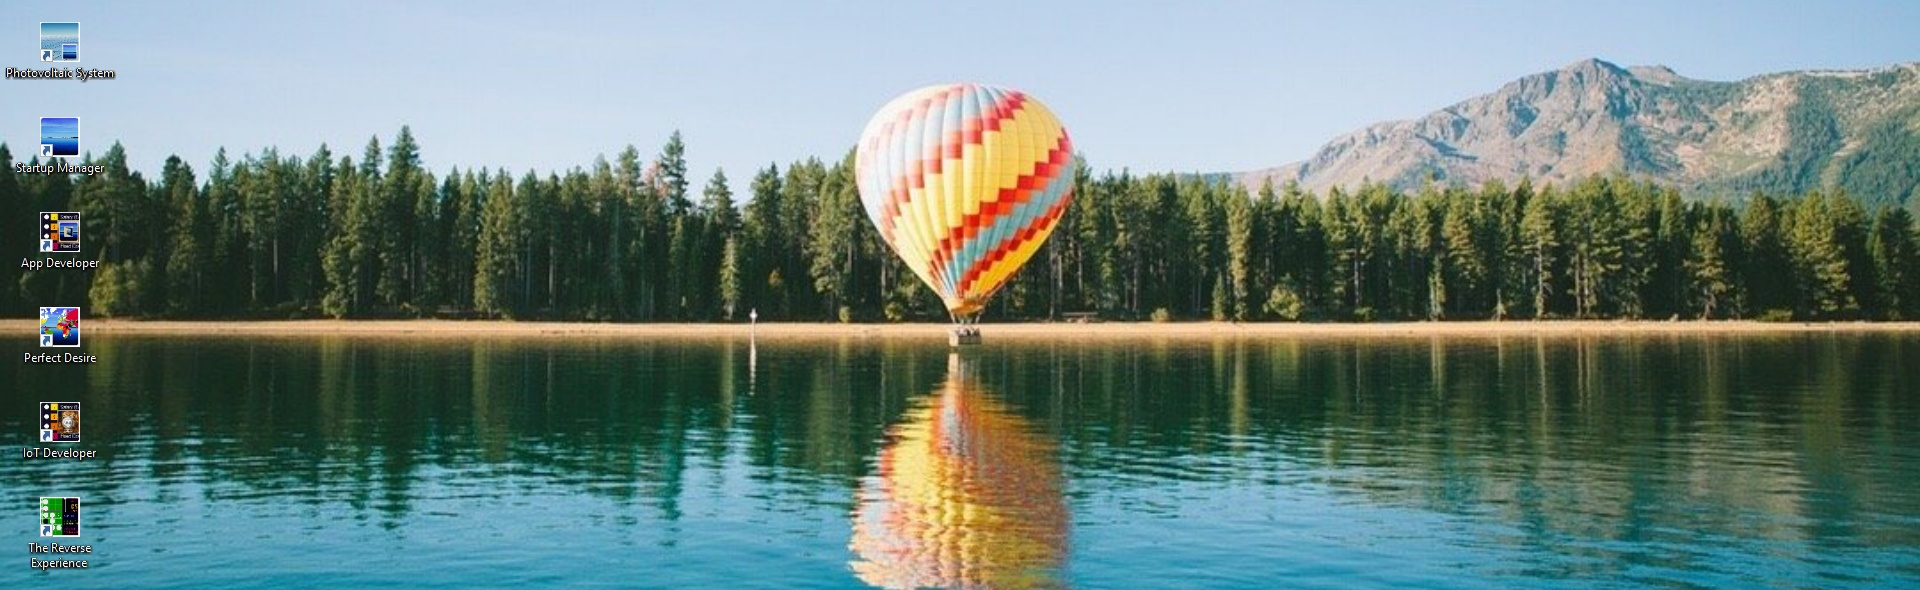 dna-header-balloon-over-lake